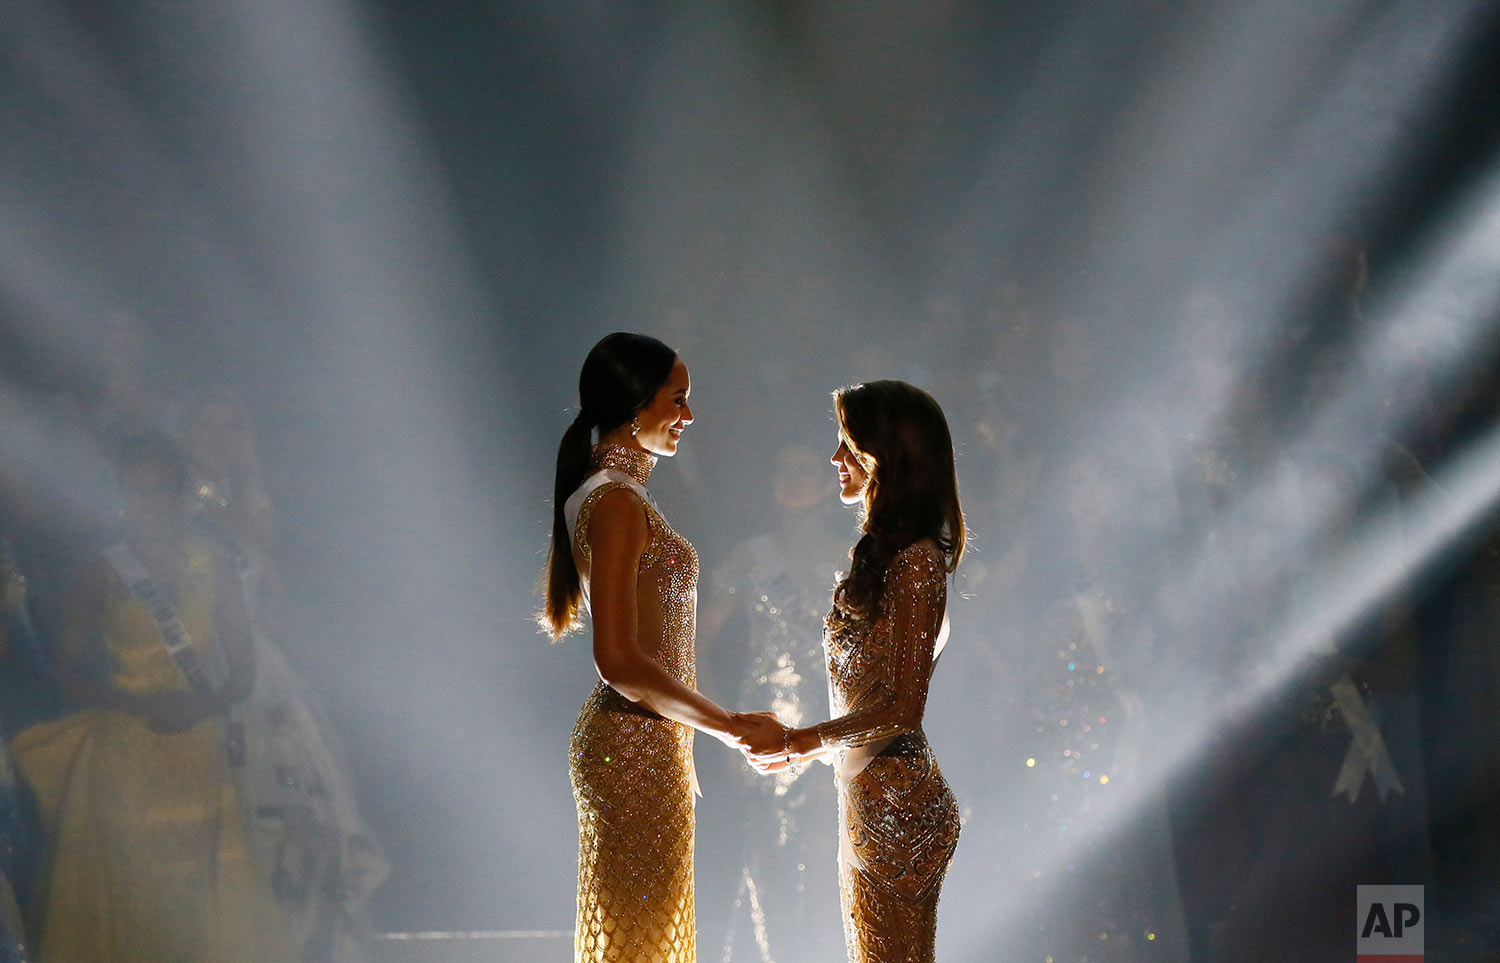 Iris Mittenaere of France, right, and Raquel Pelissier of Haiti hold hands moments before the winner was announced in the Miss Universe 2016 coronation Monday, Jan. 30, 2017, at the Mall of Asia in suburban Pasay city south of Manila, Philippines. Mittenaere was crowned the new Miss Universe 2016.(AP Photo/Bullit Marquez)